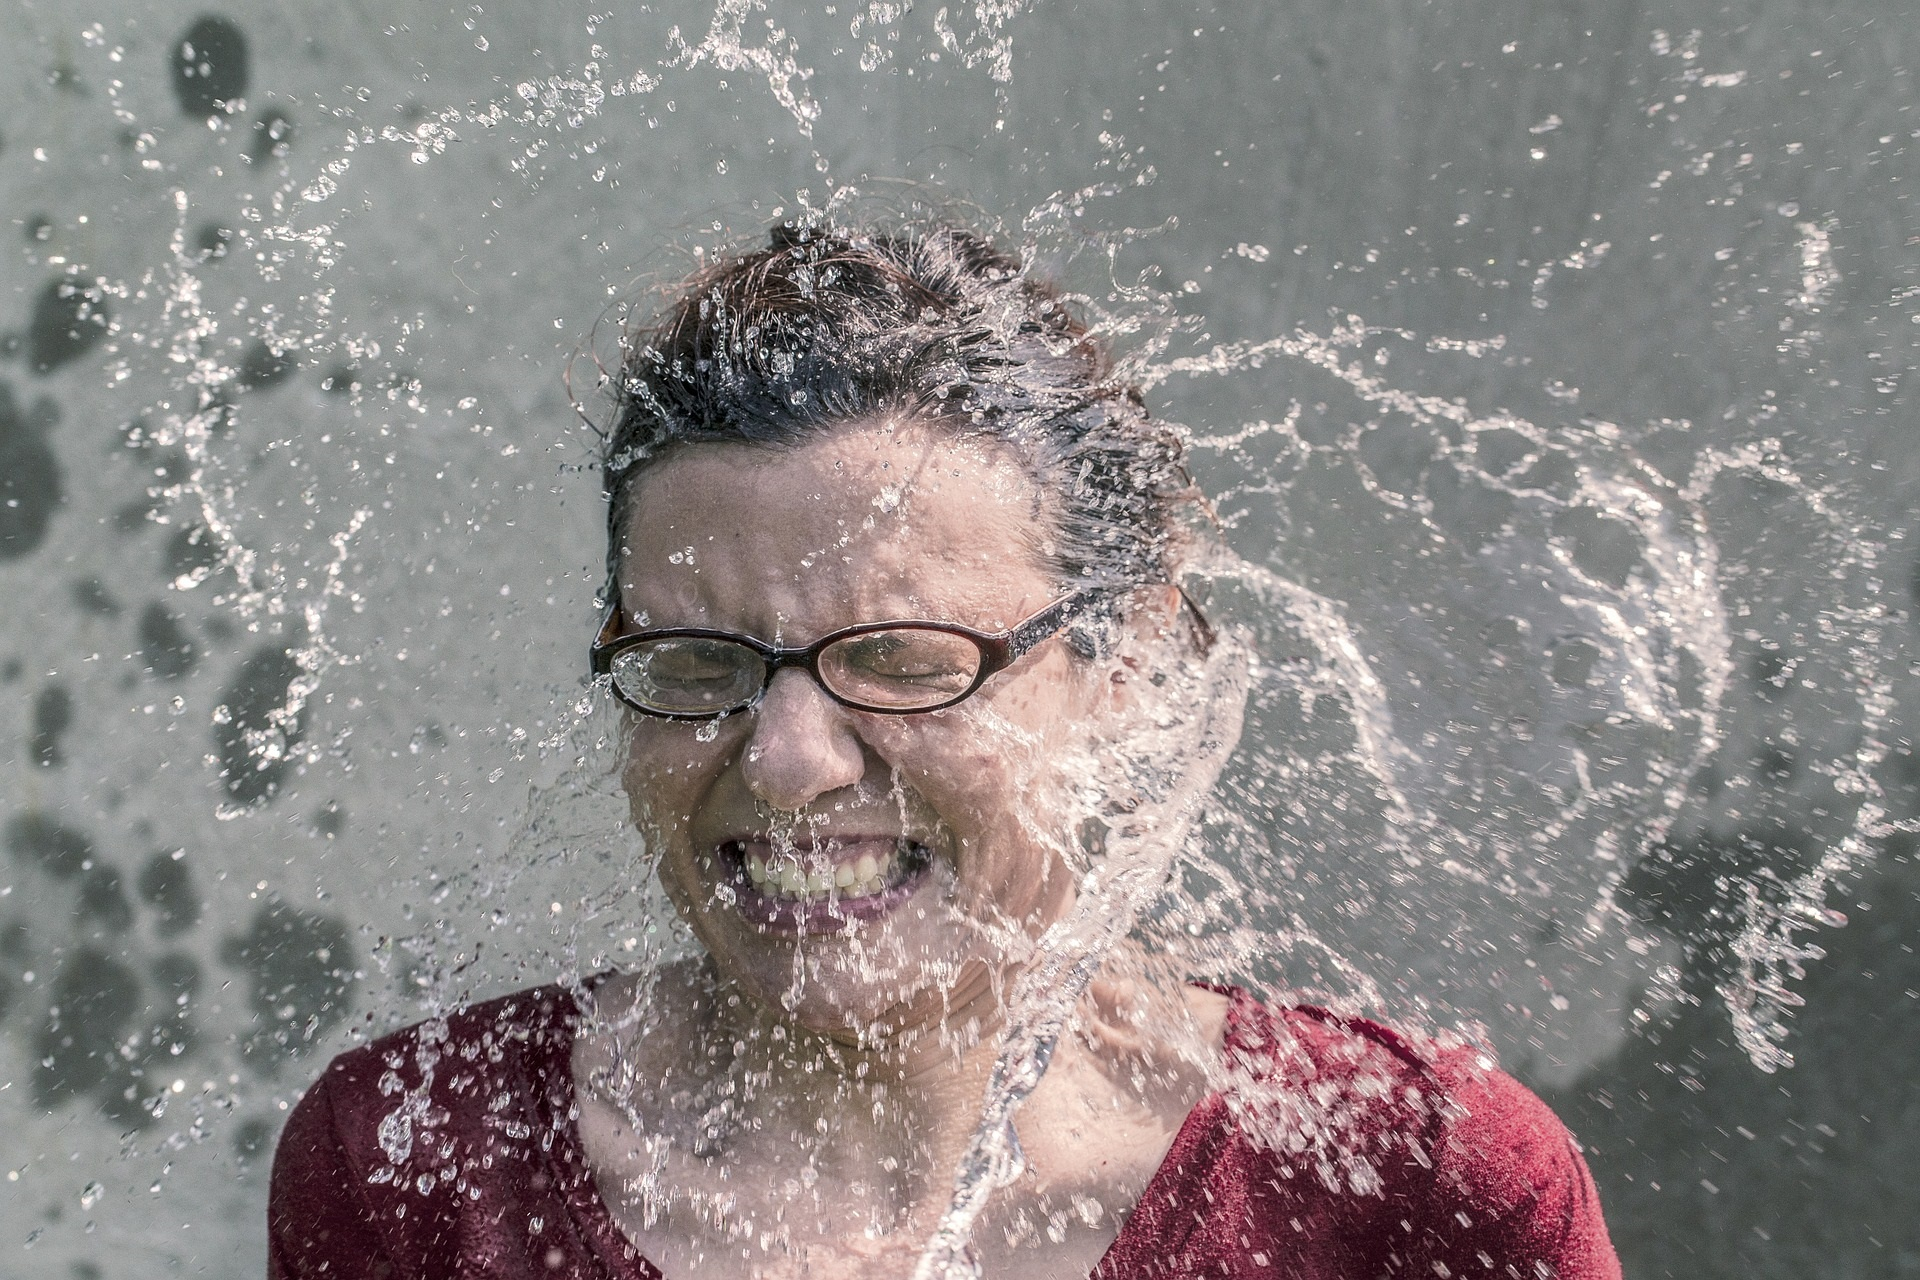 woman with water splashing in her face